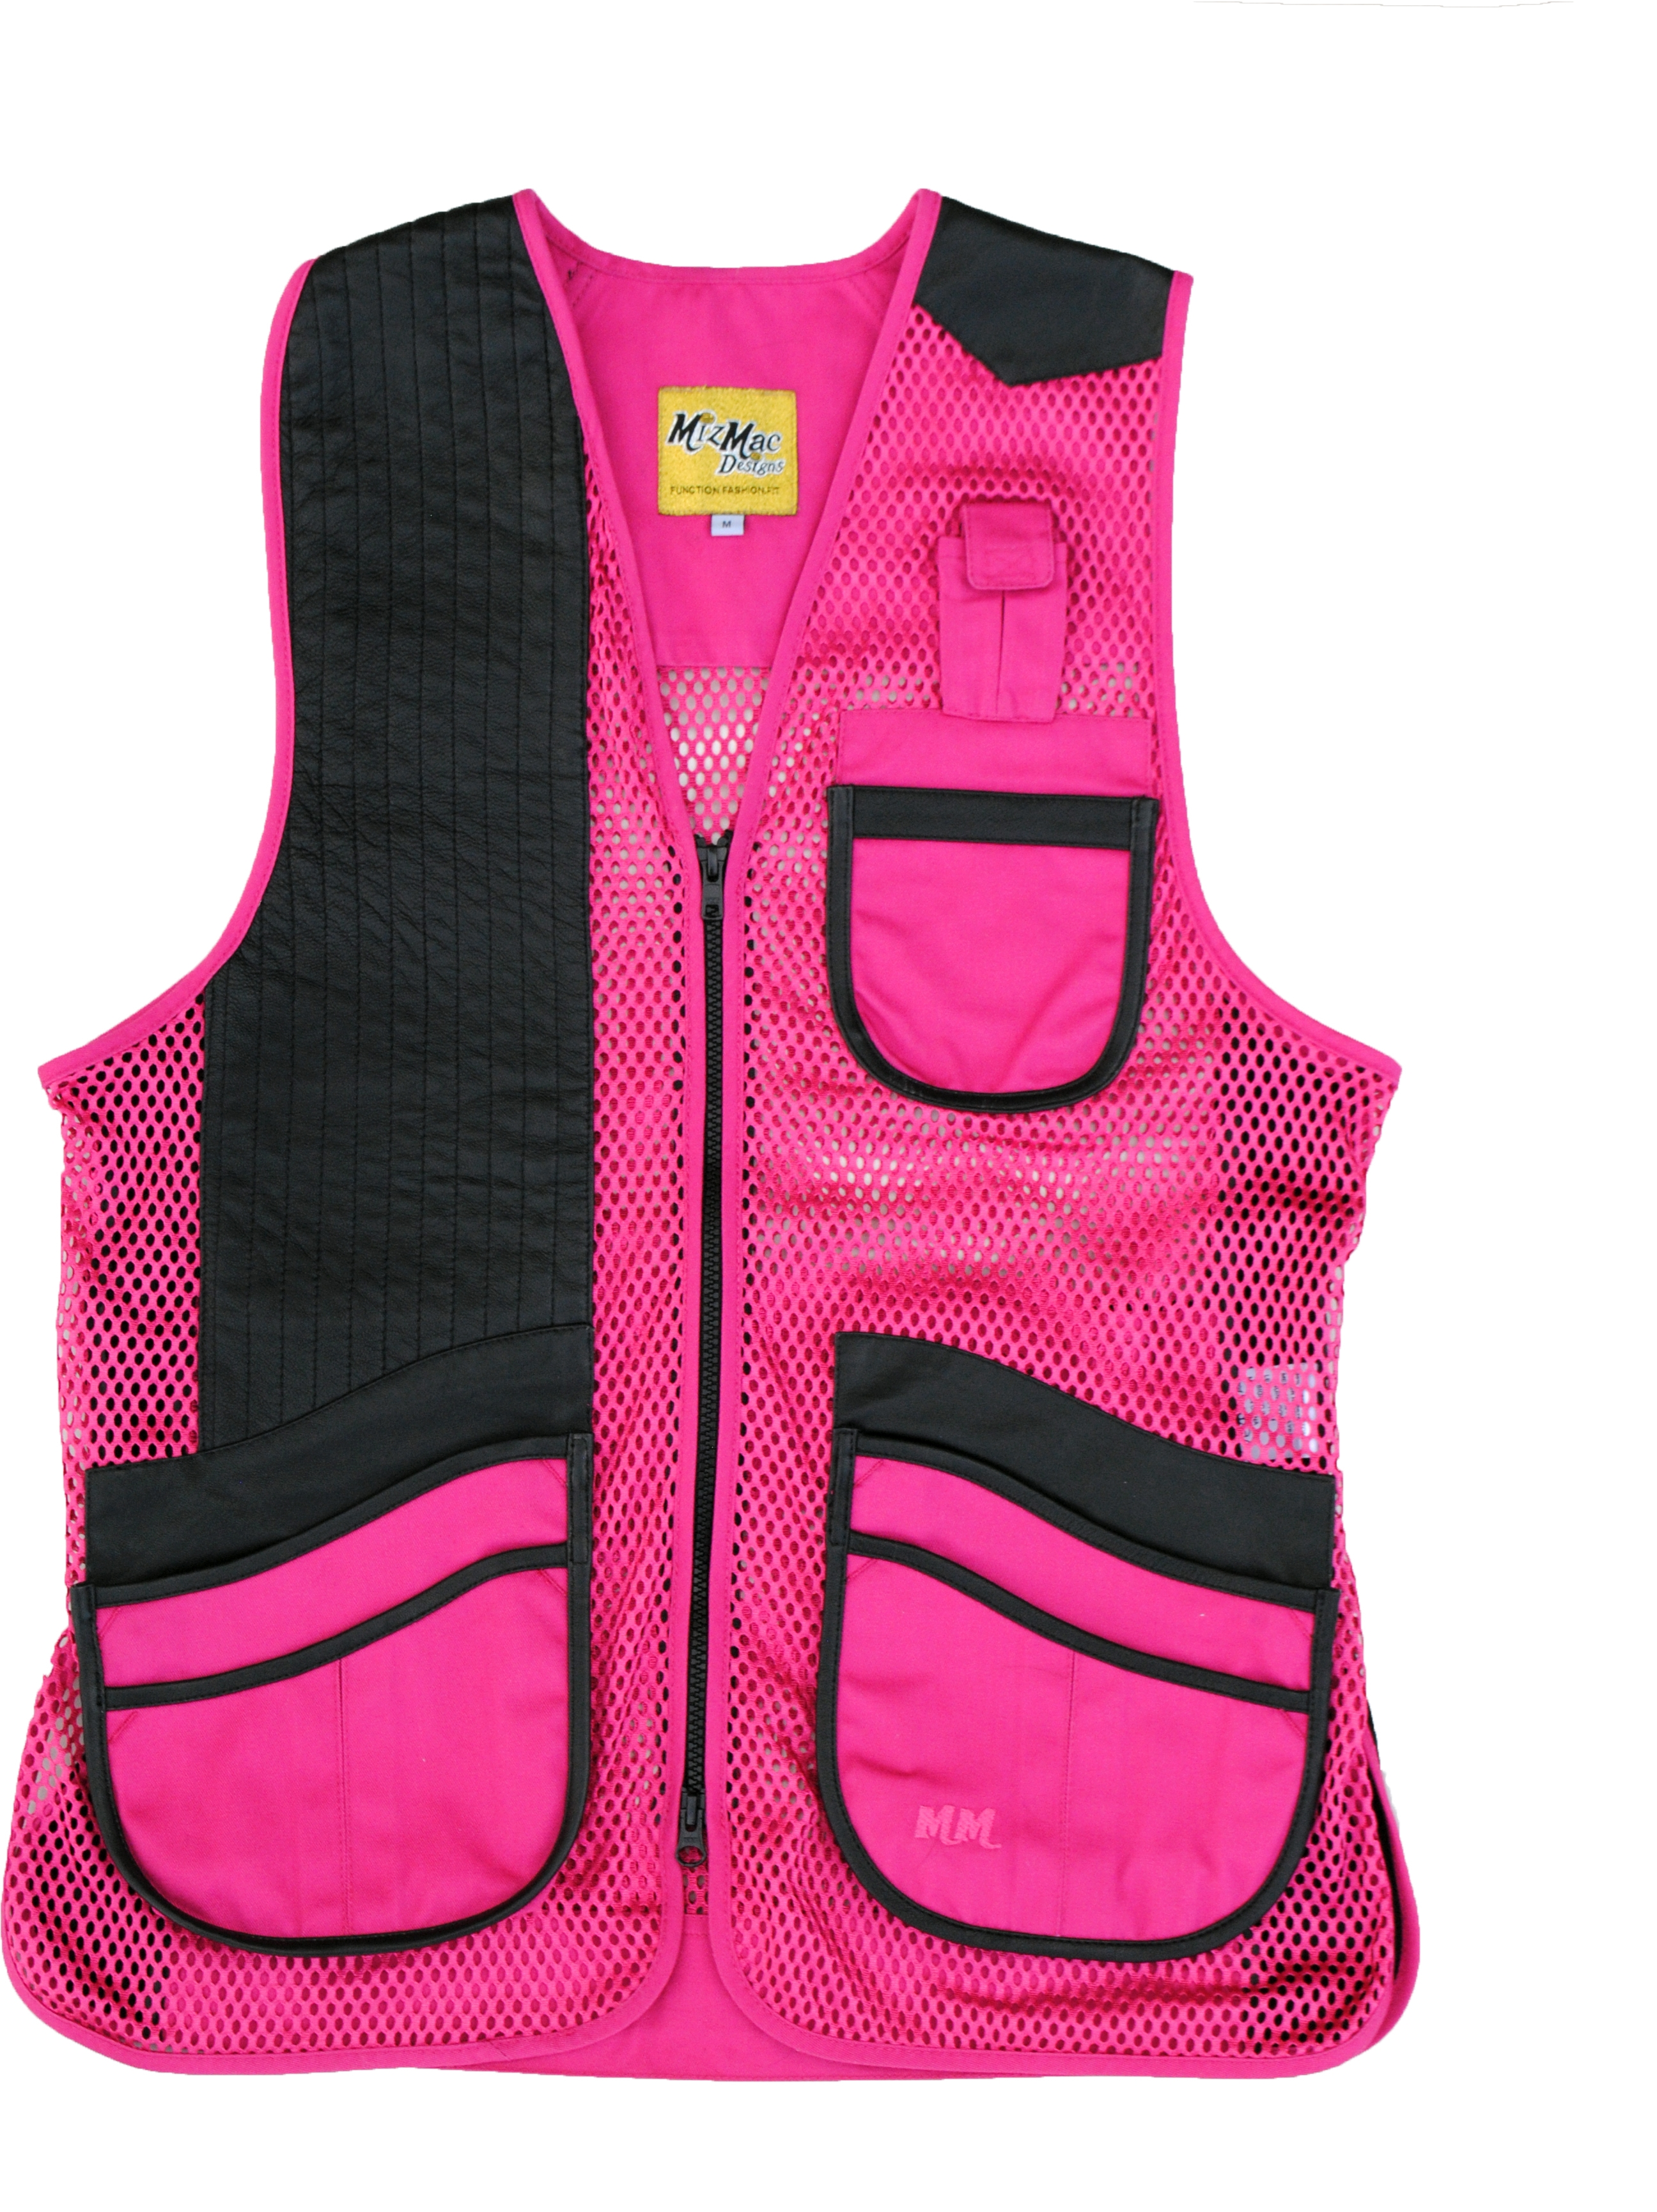 New! MizMac Womens Perfect Fit Mesh Vest - Genuine Leather Pad - Hot Pink  womens shooting vest, mesh vest, leather shooting vest, leatherette vest, adjustable vest